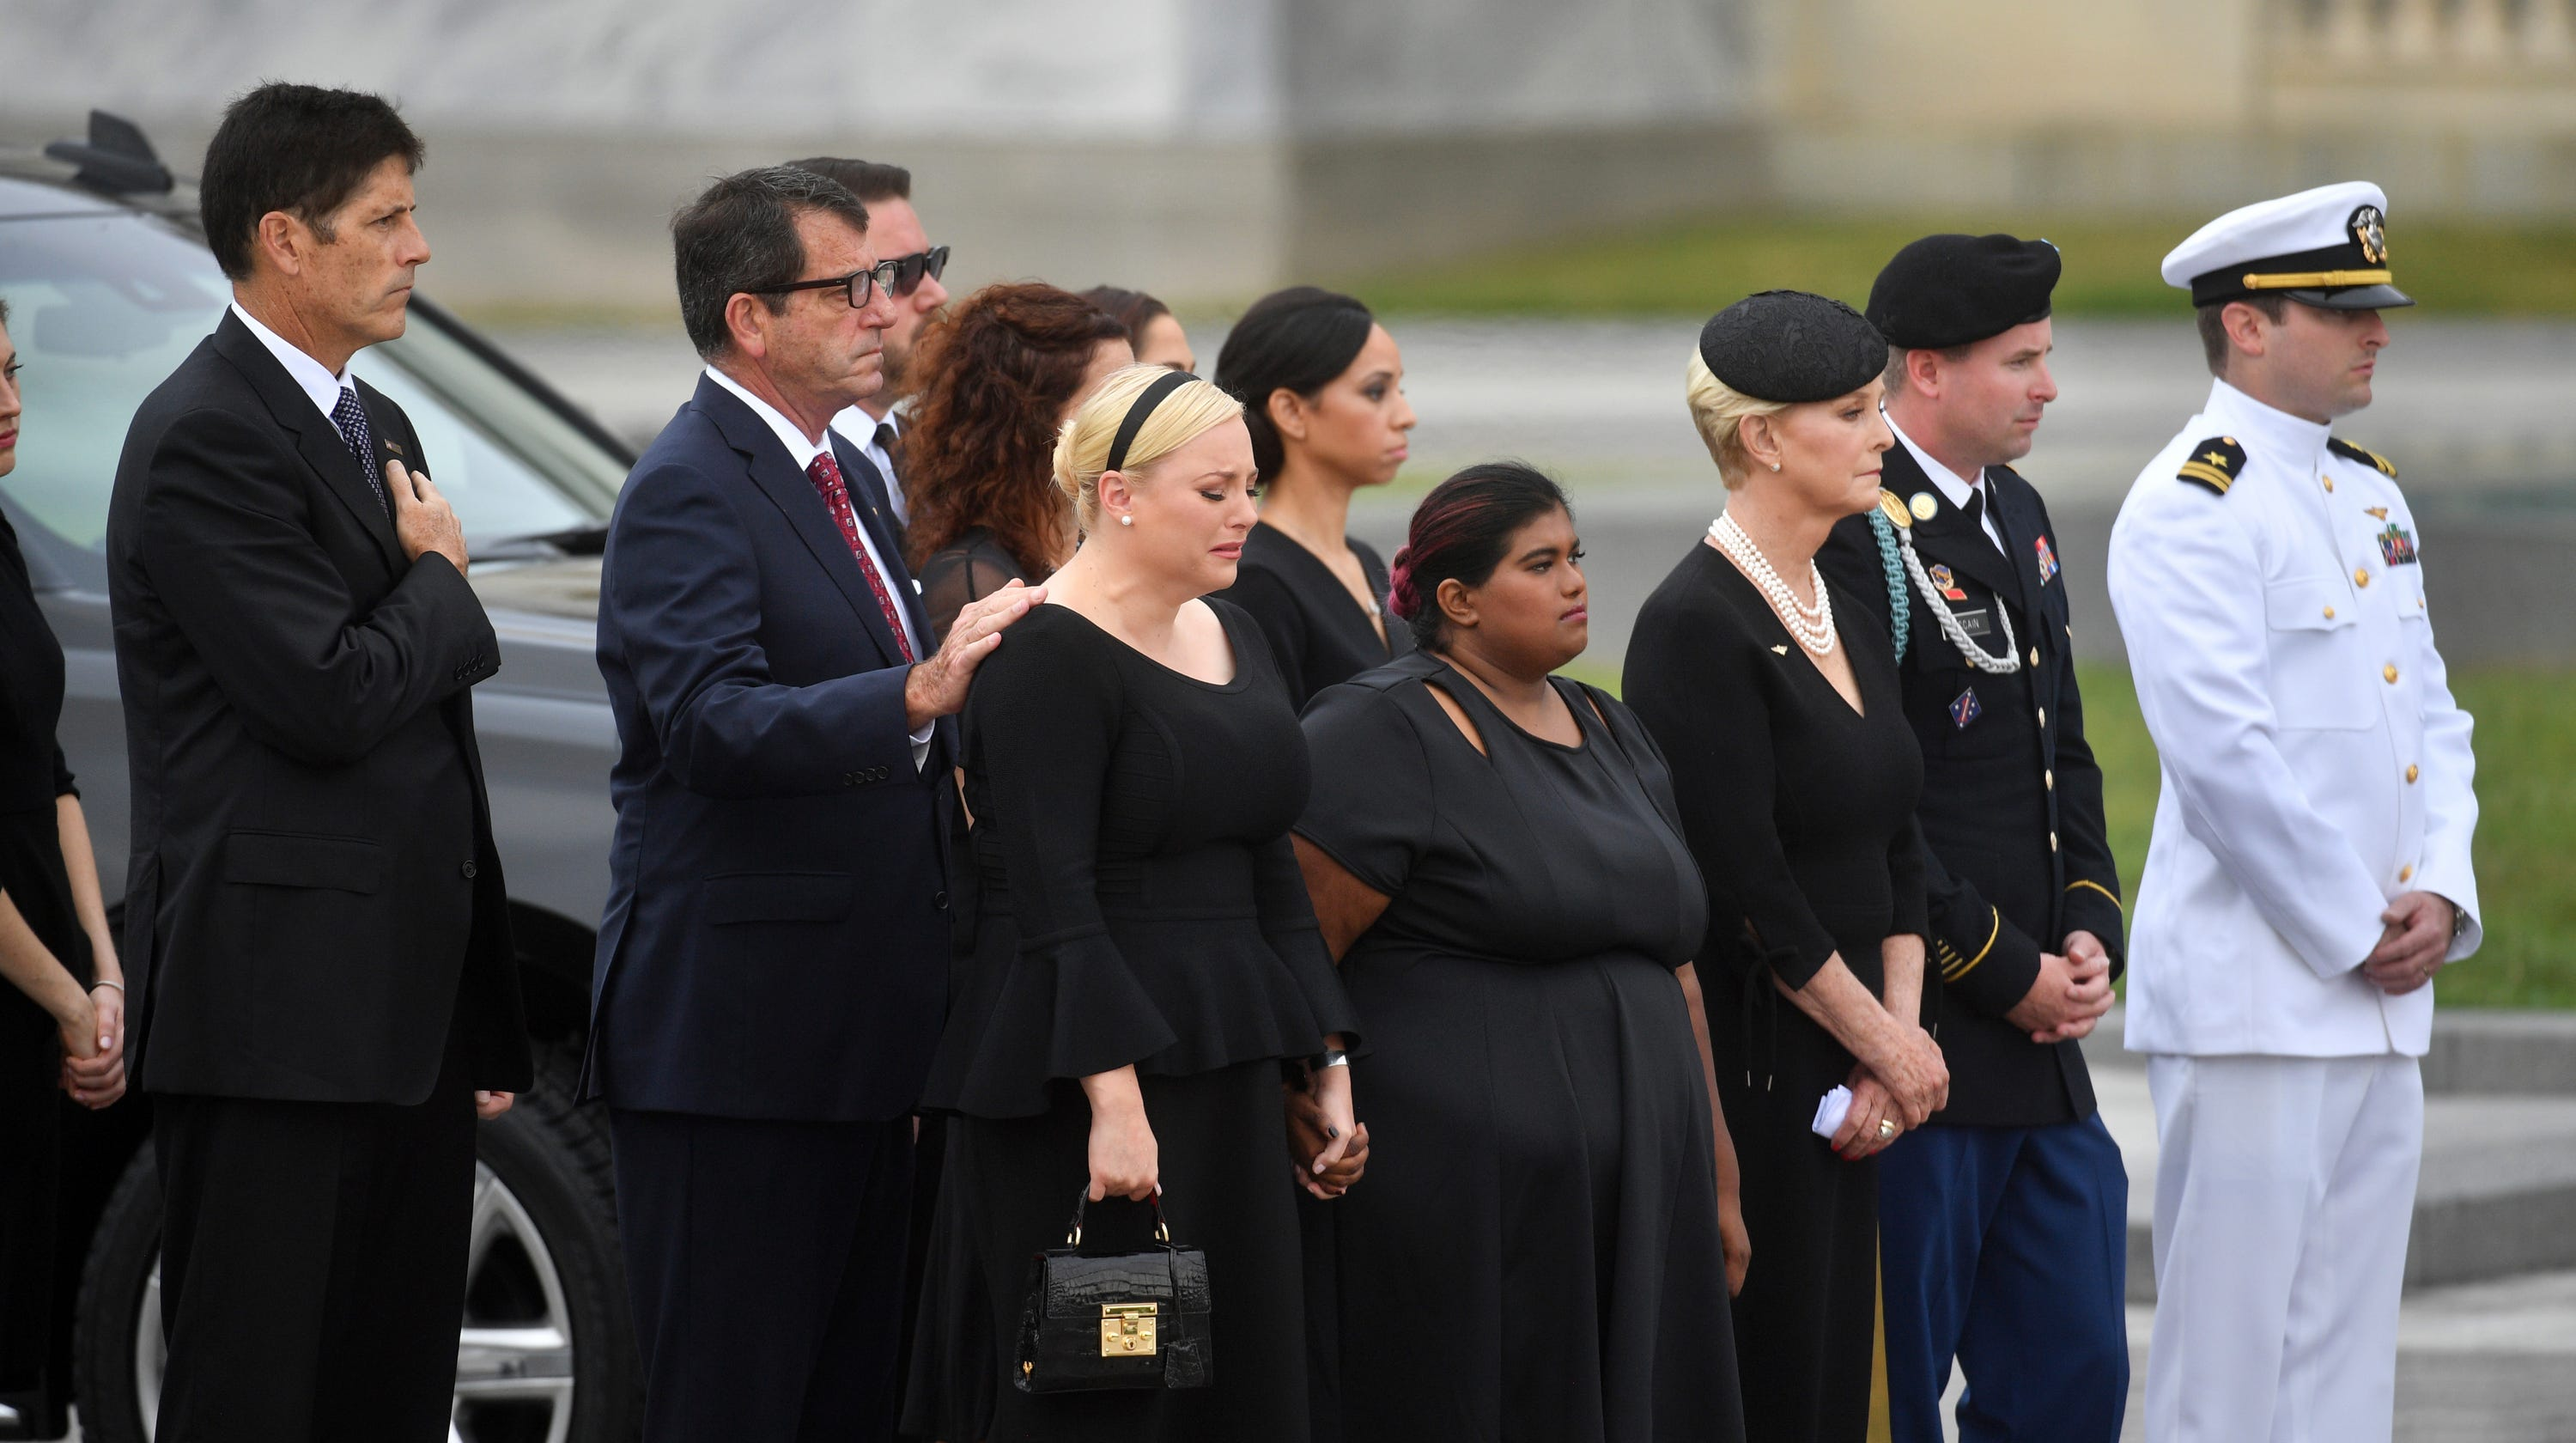 Cindy McCain tweet after John McCain funeral: 'Together we